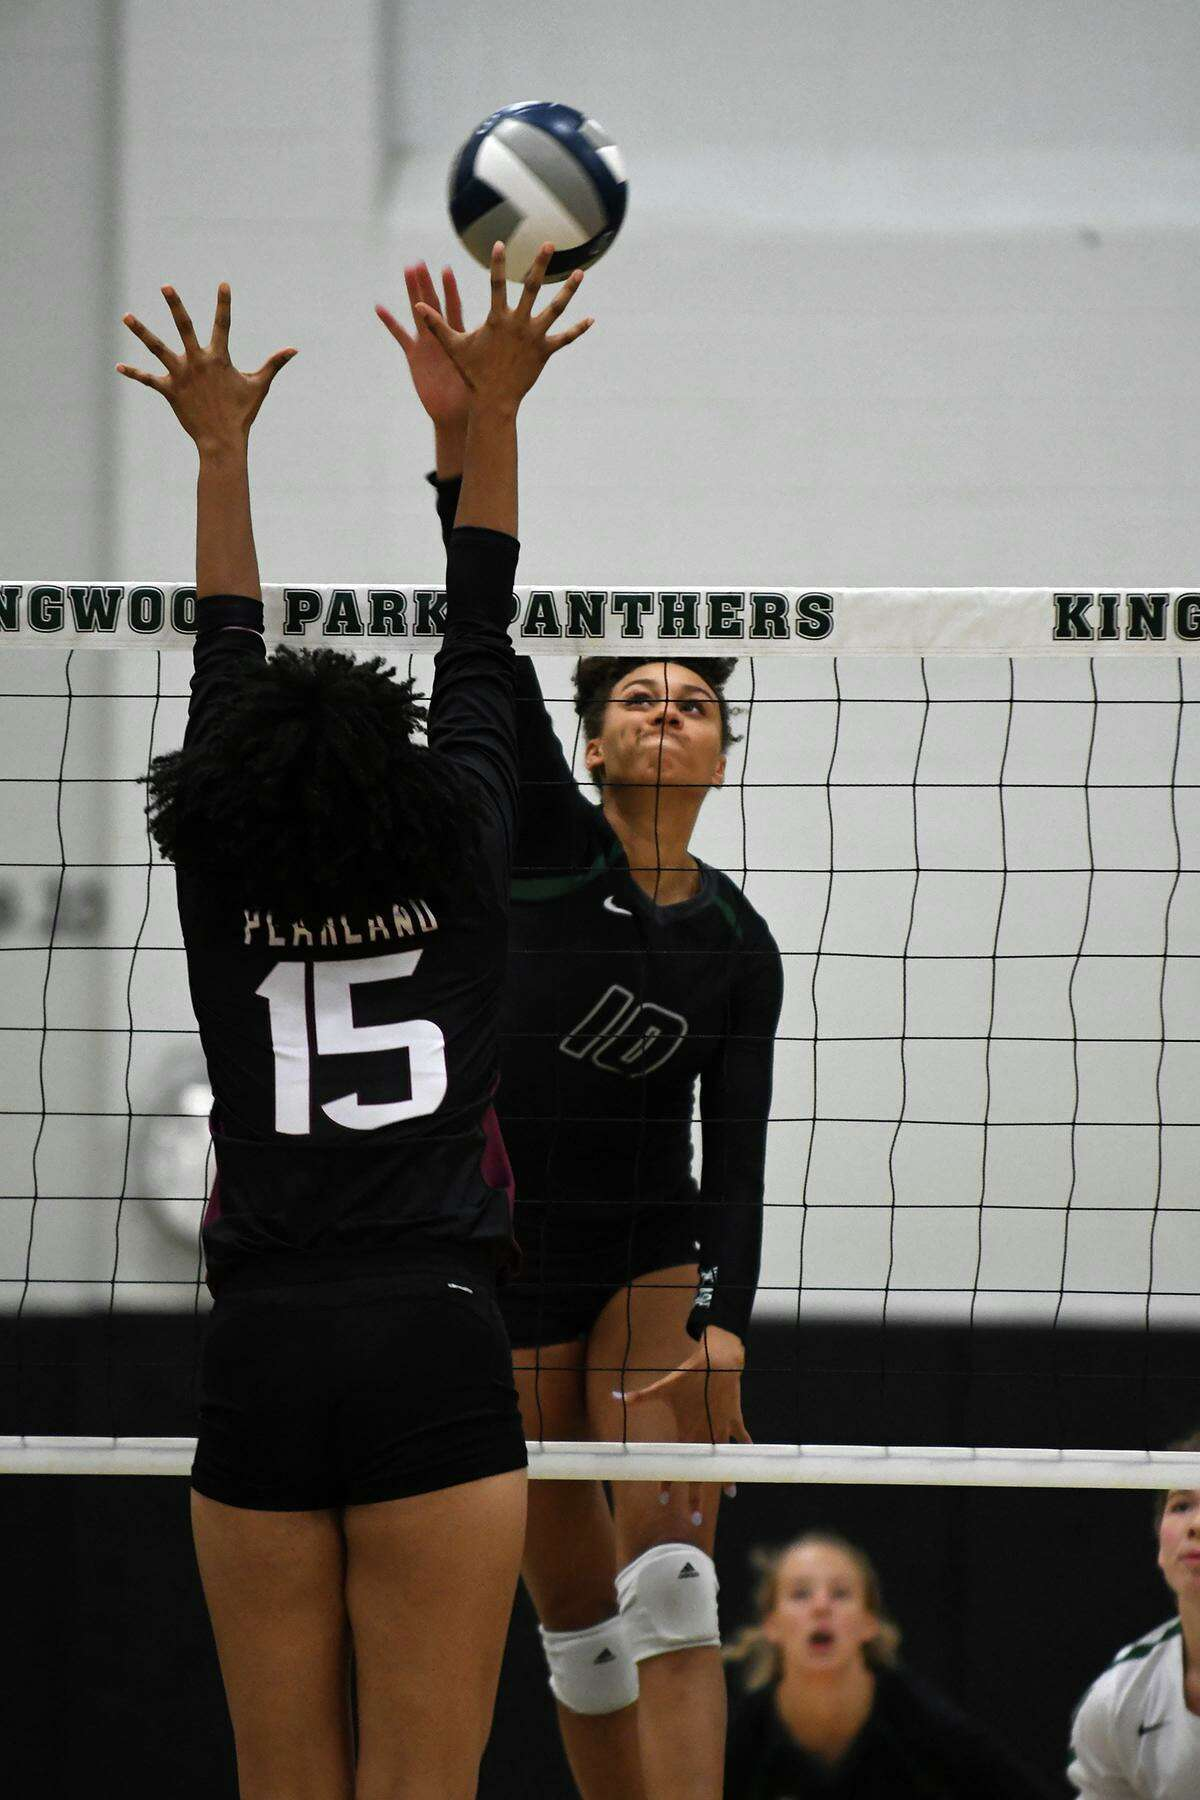 Kingwood Park's Erika Williams, right, makes a play against Pearland's April Conant (15) during their season-opening non-district match at Kingwood Park High School on August 6, 2019.